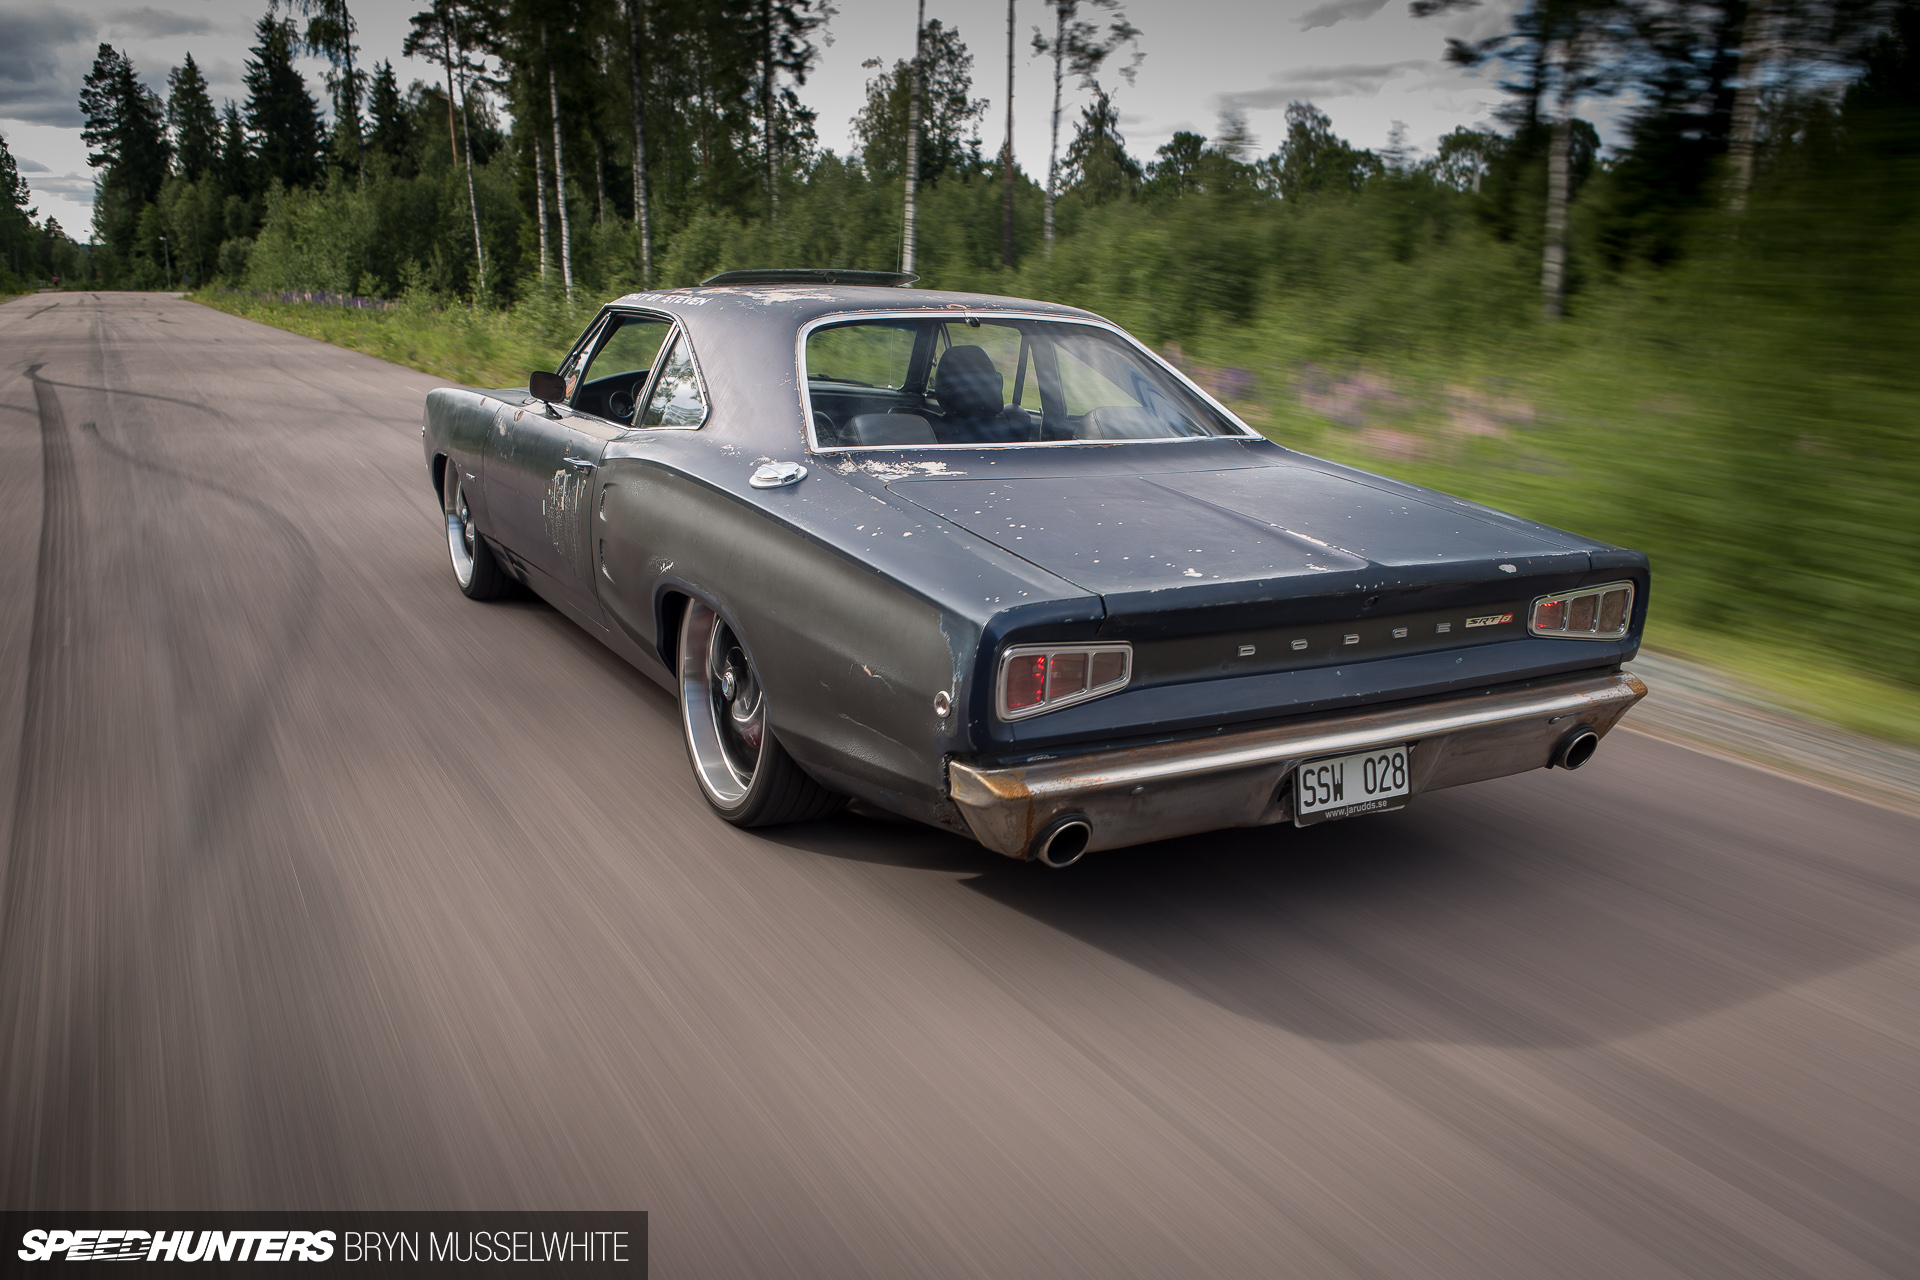 Jaruds-Bil-SE-Crazy-by-Steven-Coronet-Charger-57